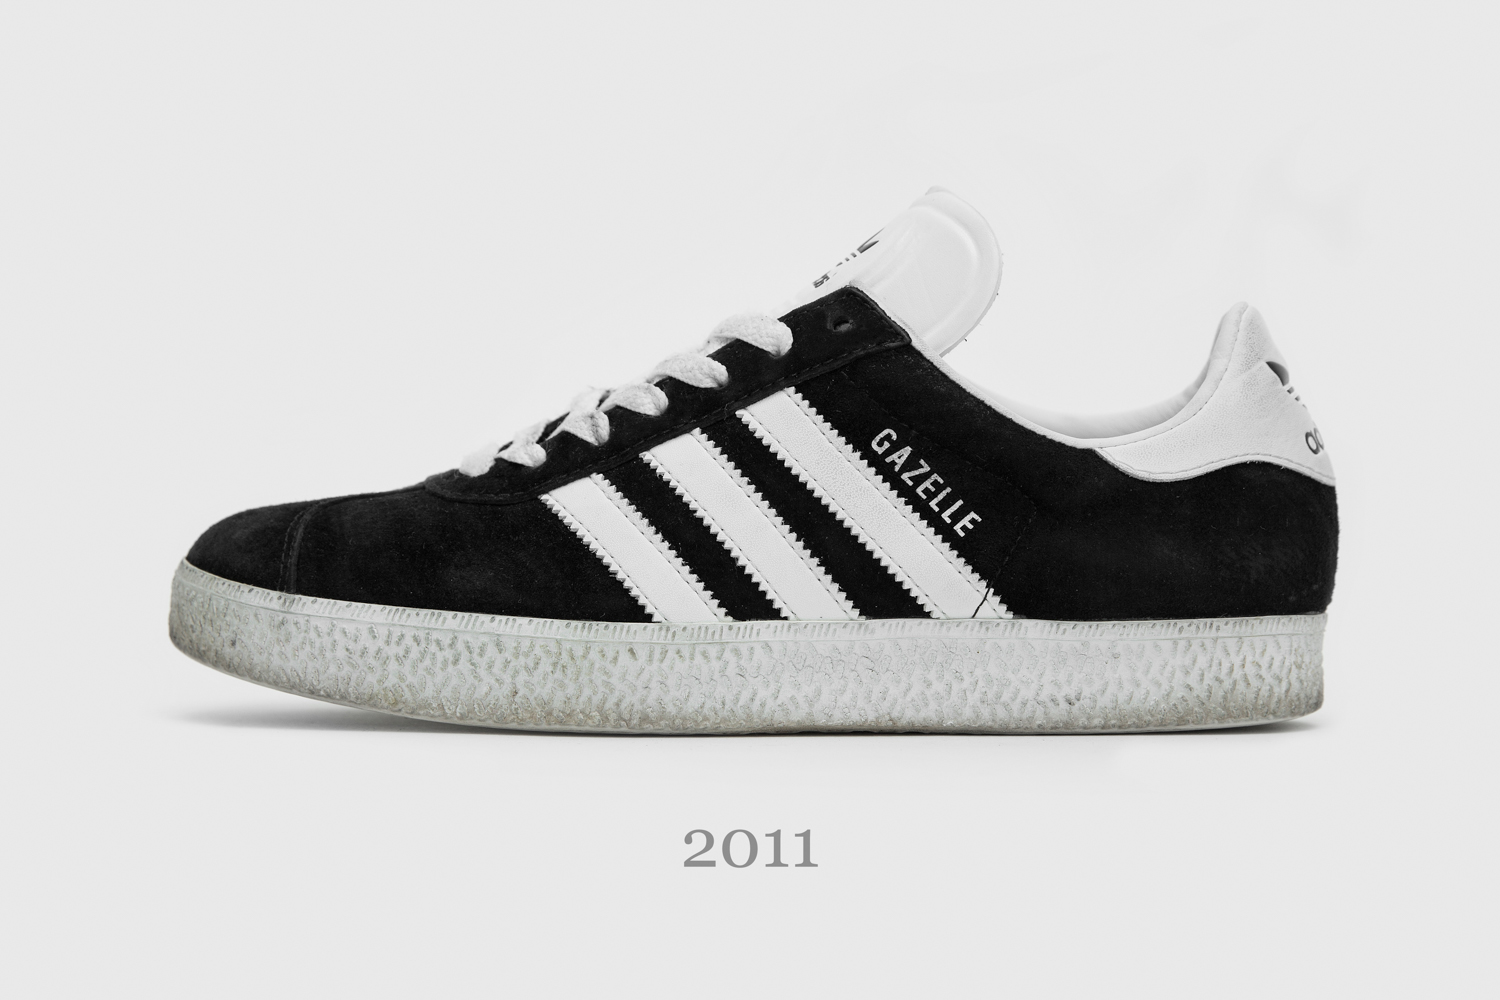 size_HQ_Lockup_adidas_originals_gazelle-1